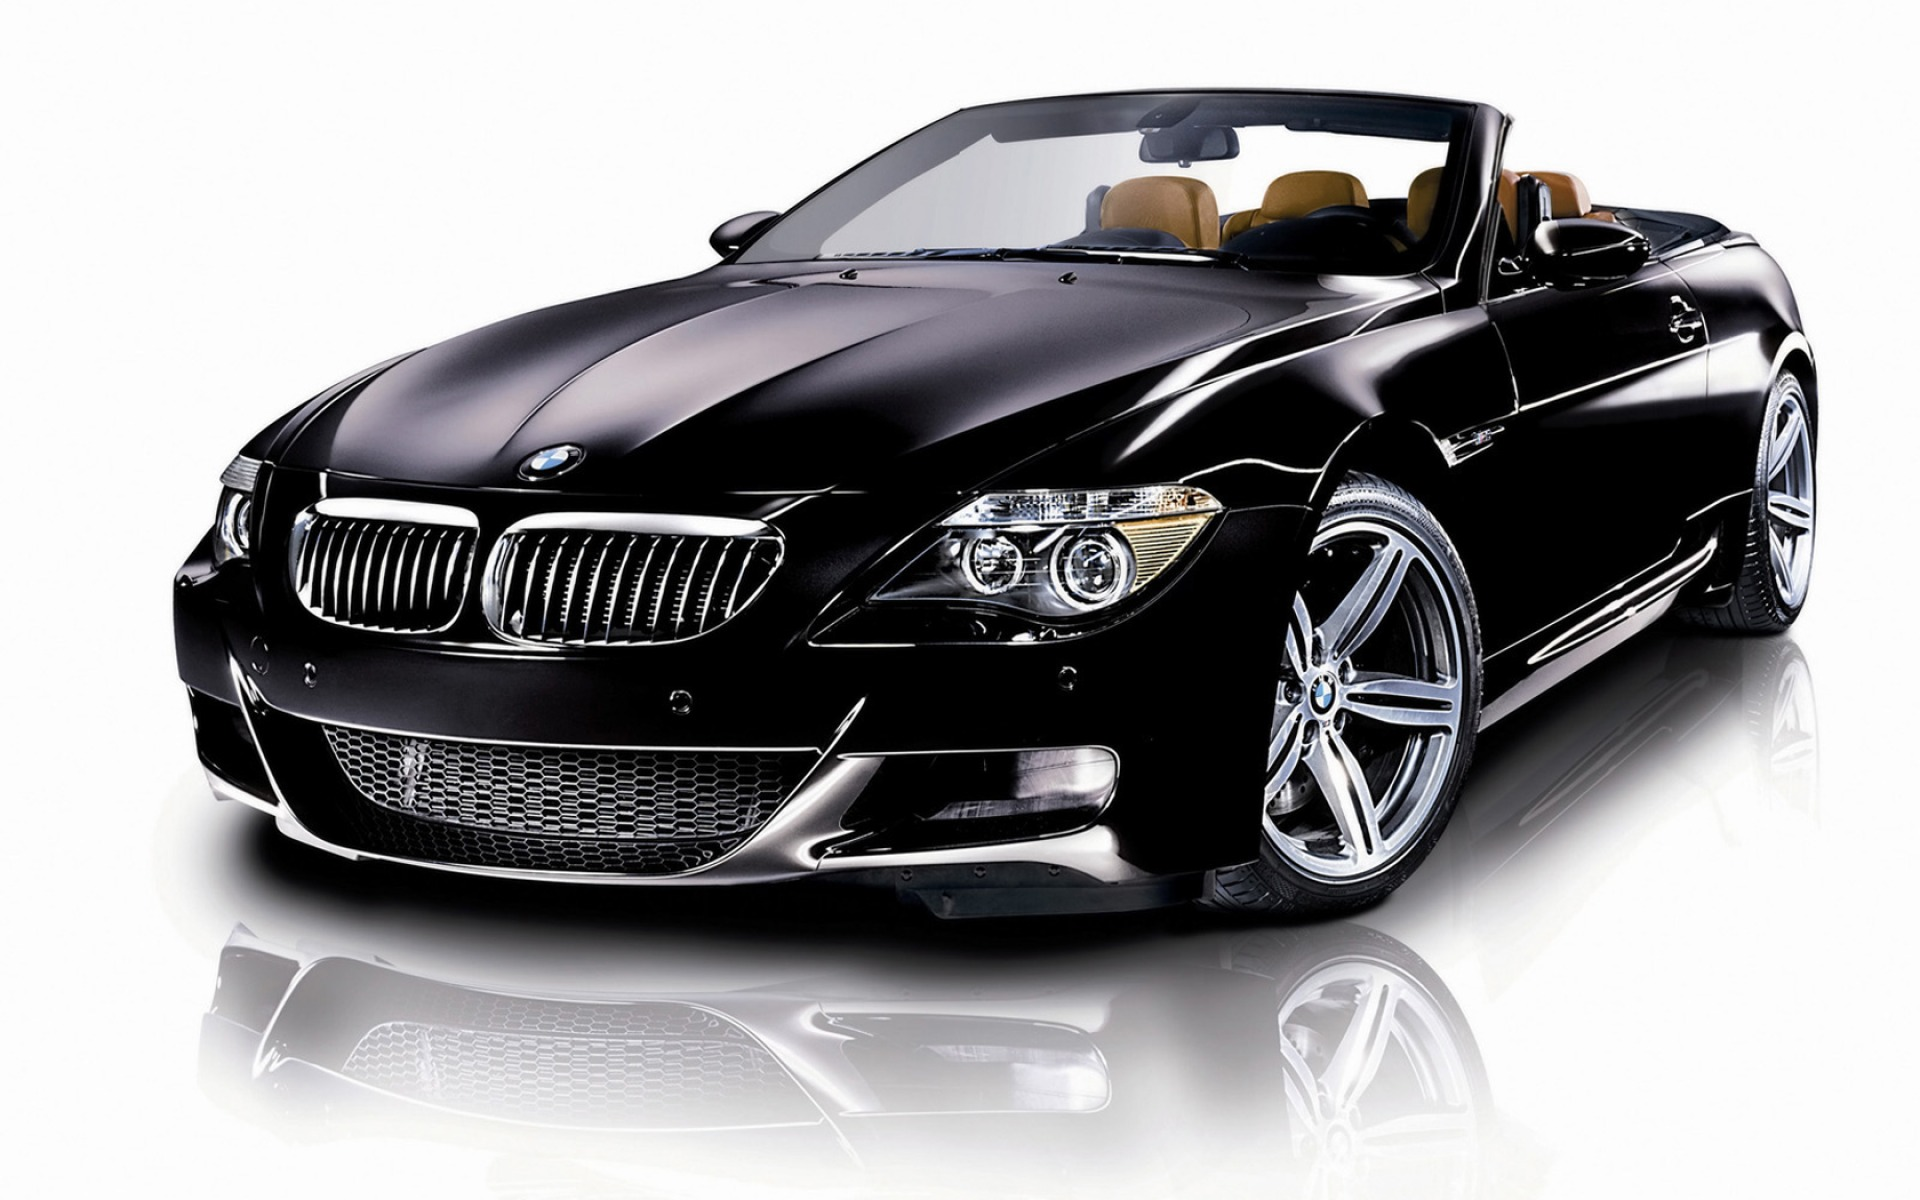 Ultrablogus  Inspiring Bmw Car Wallpaper Wallpapers For Free Download About   With Marvelous Bmw M Convertible Wallpaper Bmw Cars With Charming Car Interior Glue Also Rubicon Interiors In Addition Cadillac Interiors And Ford Truck Interior Paint As Well As Bmw I Interior Additionally  F Interior From Allfreedownloadcom With Ultrablogus  Marvelous Bmw Car Wallpaper Wallpapers For Free Download About   With Charming Bmw M Convertible Wallpaper Bmw Cars And Inspiring Car Interior Glue Also Rubicon Interiors In Addition Cadillac Interiors From Allfreedownloadcom